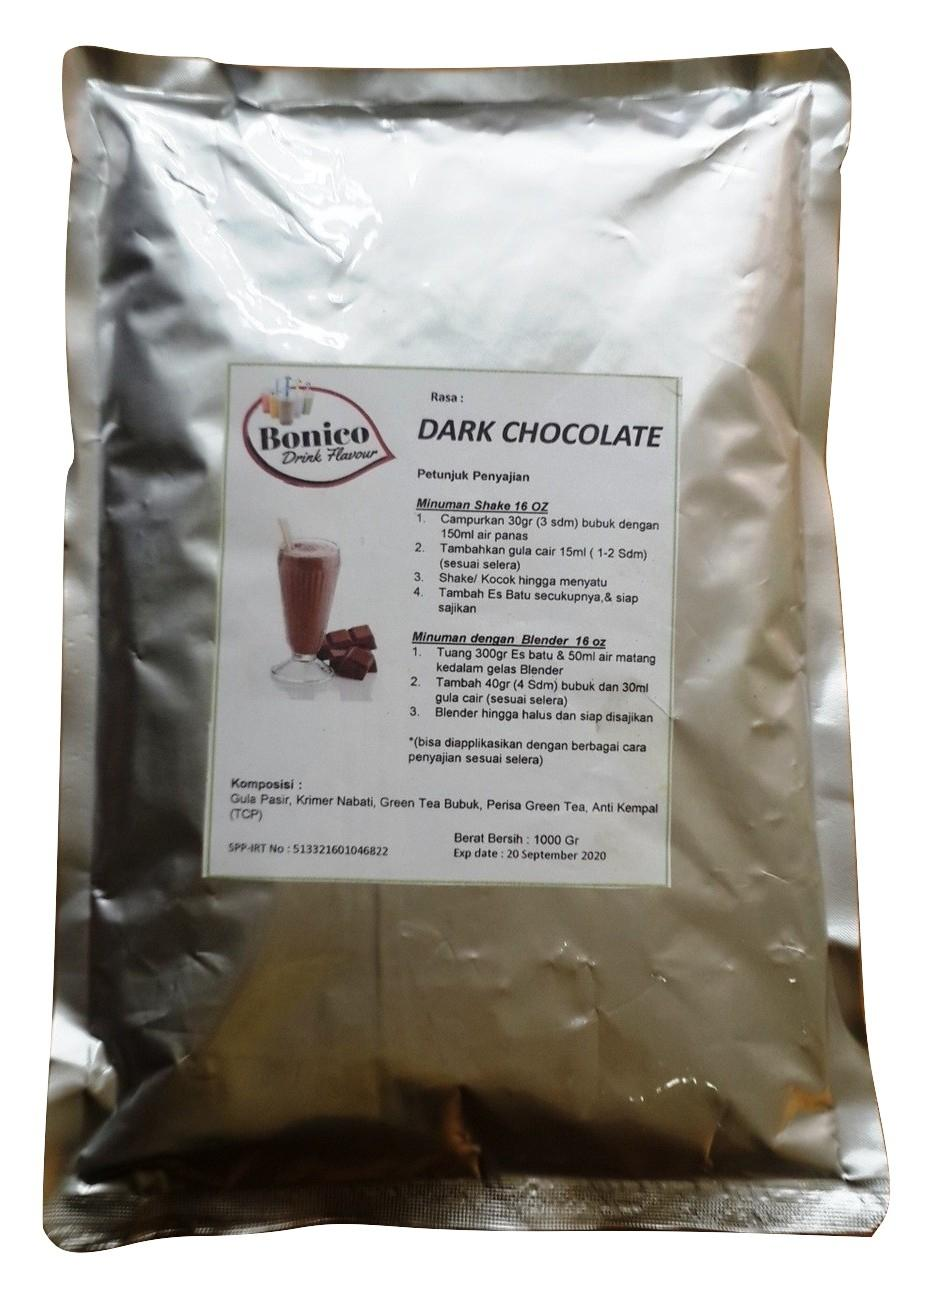 BONICO DARK CHOCOLATE Powder 1kg Bubuk Minuman Drink Flavor Powder ice blend milk shake COKLAT HITAM Orimoto Mart